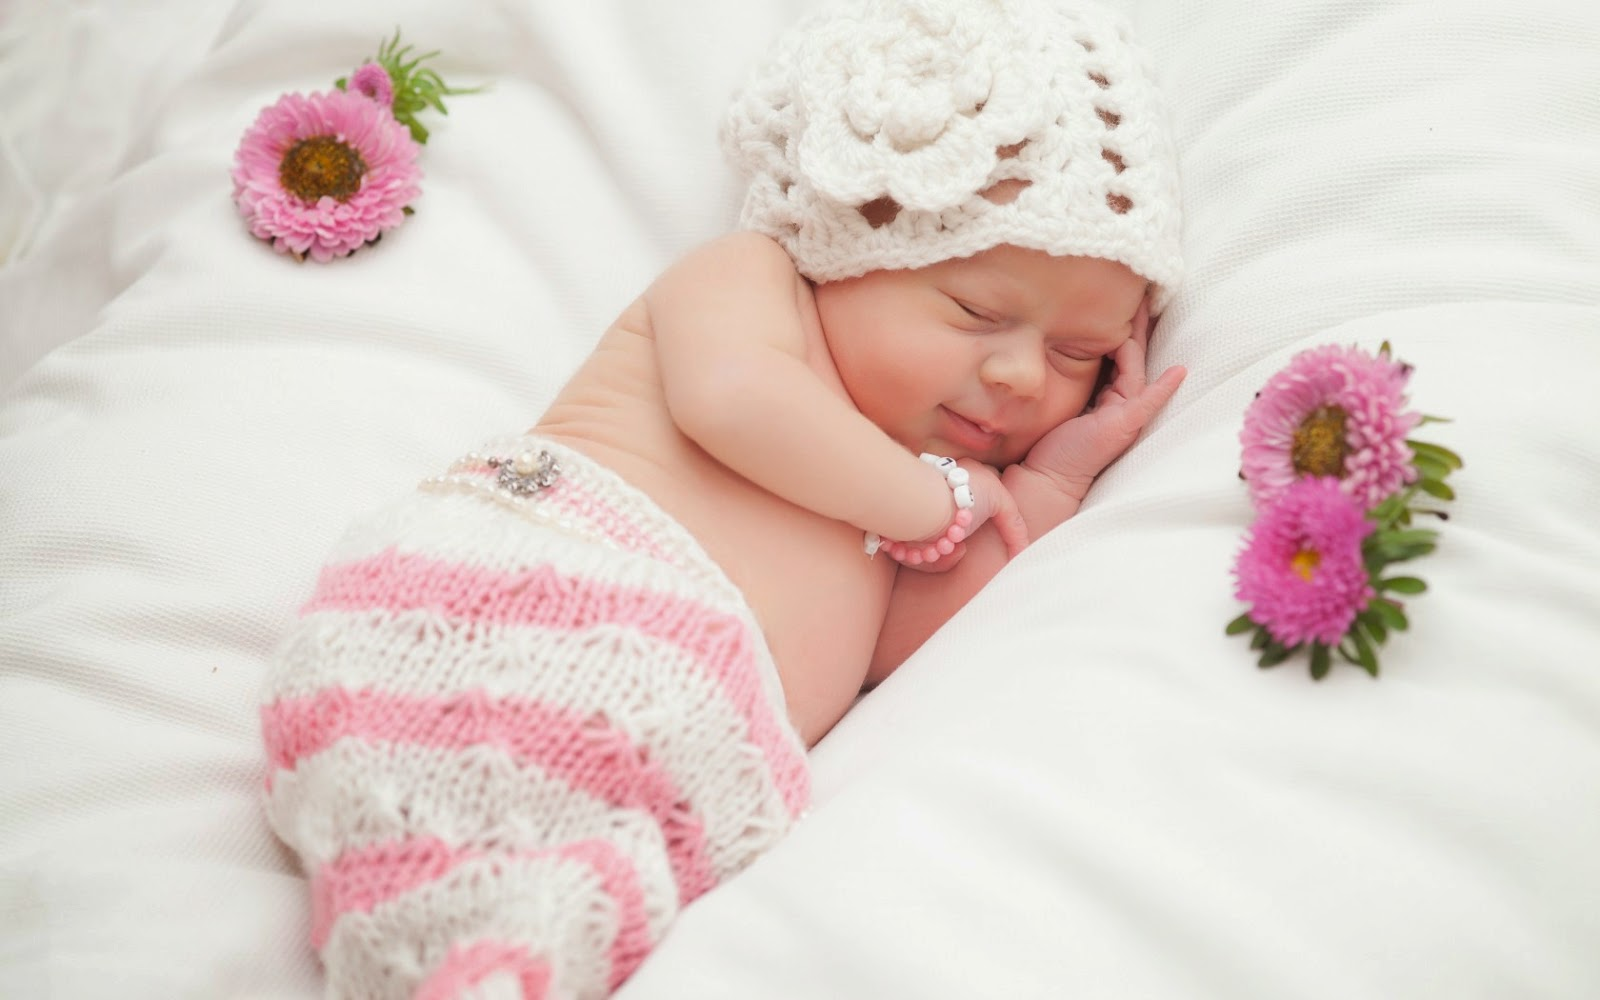 Cute baby sleeping images HD photos wallpapers Pictures